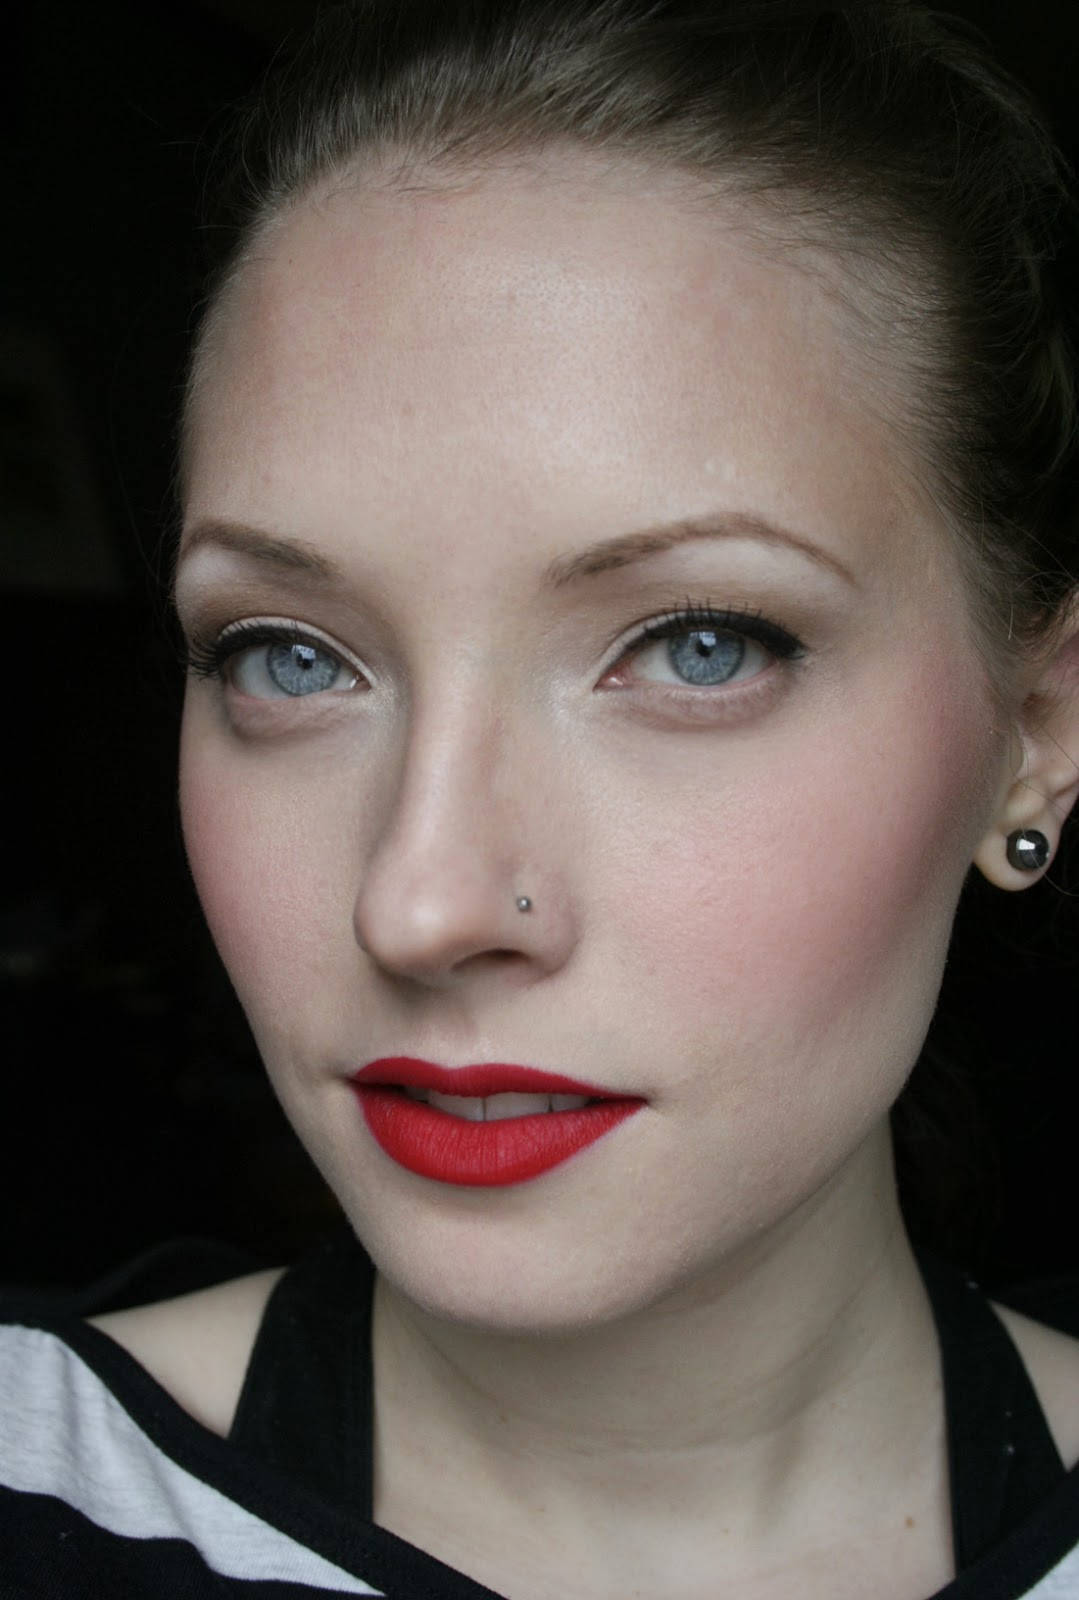 kt the little lady holiday party makeup the modern pinup